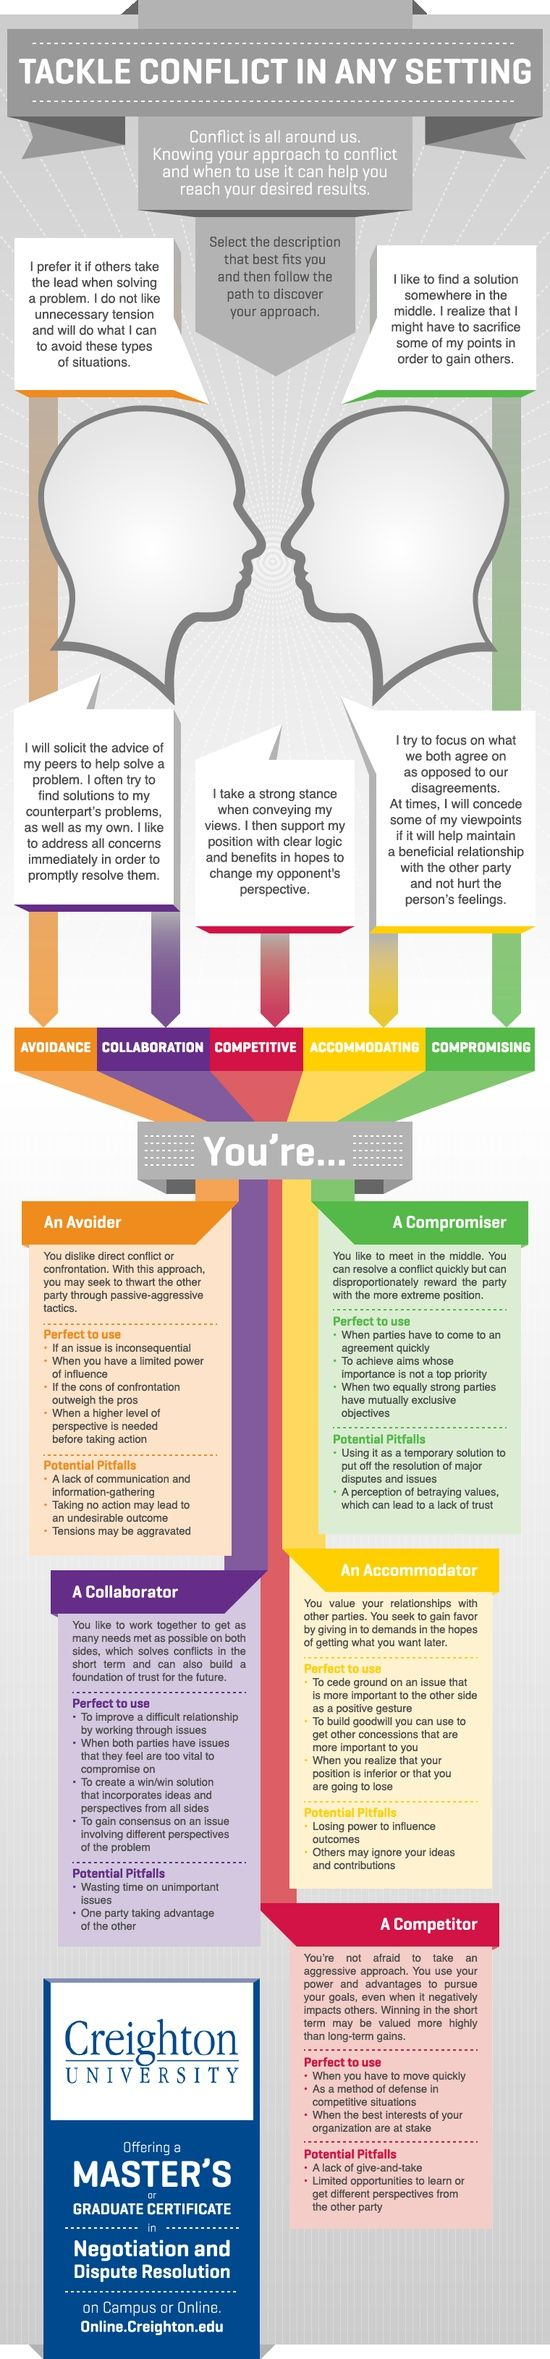 Negotiation Infographic - Tackle Conflict in Any Setting - Creighton | http://tipsforsoftskillskelton.blogspot.com